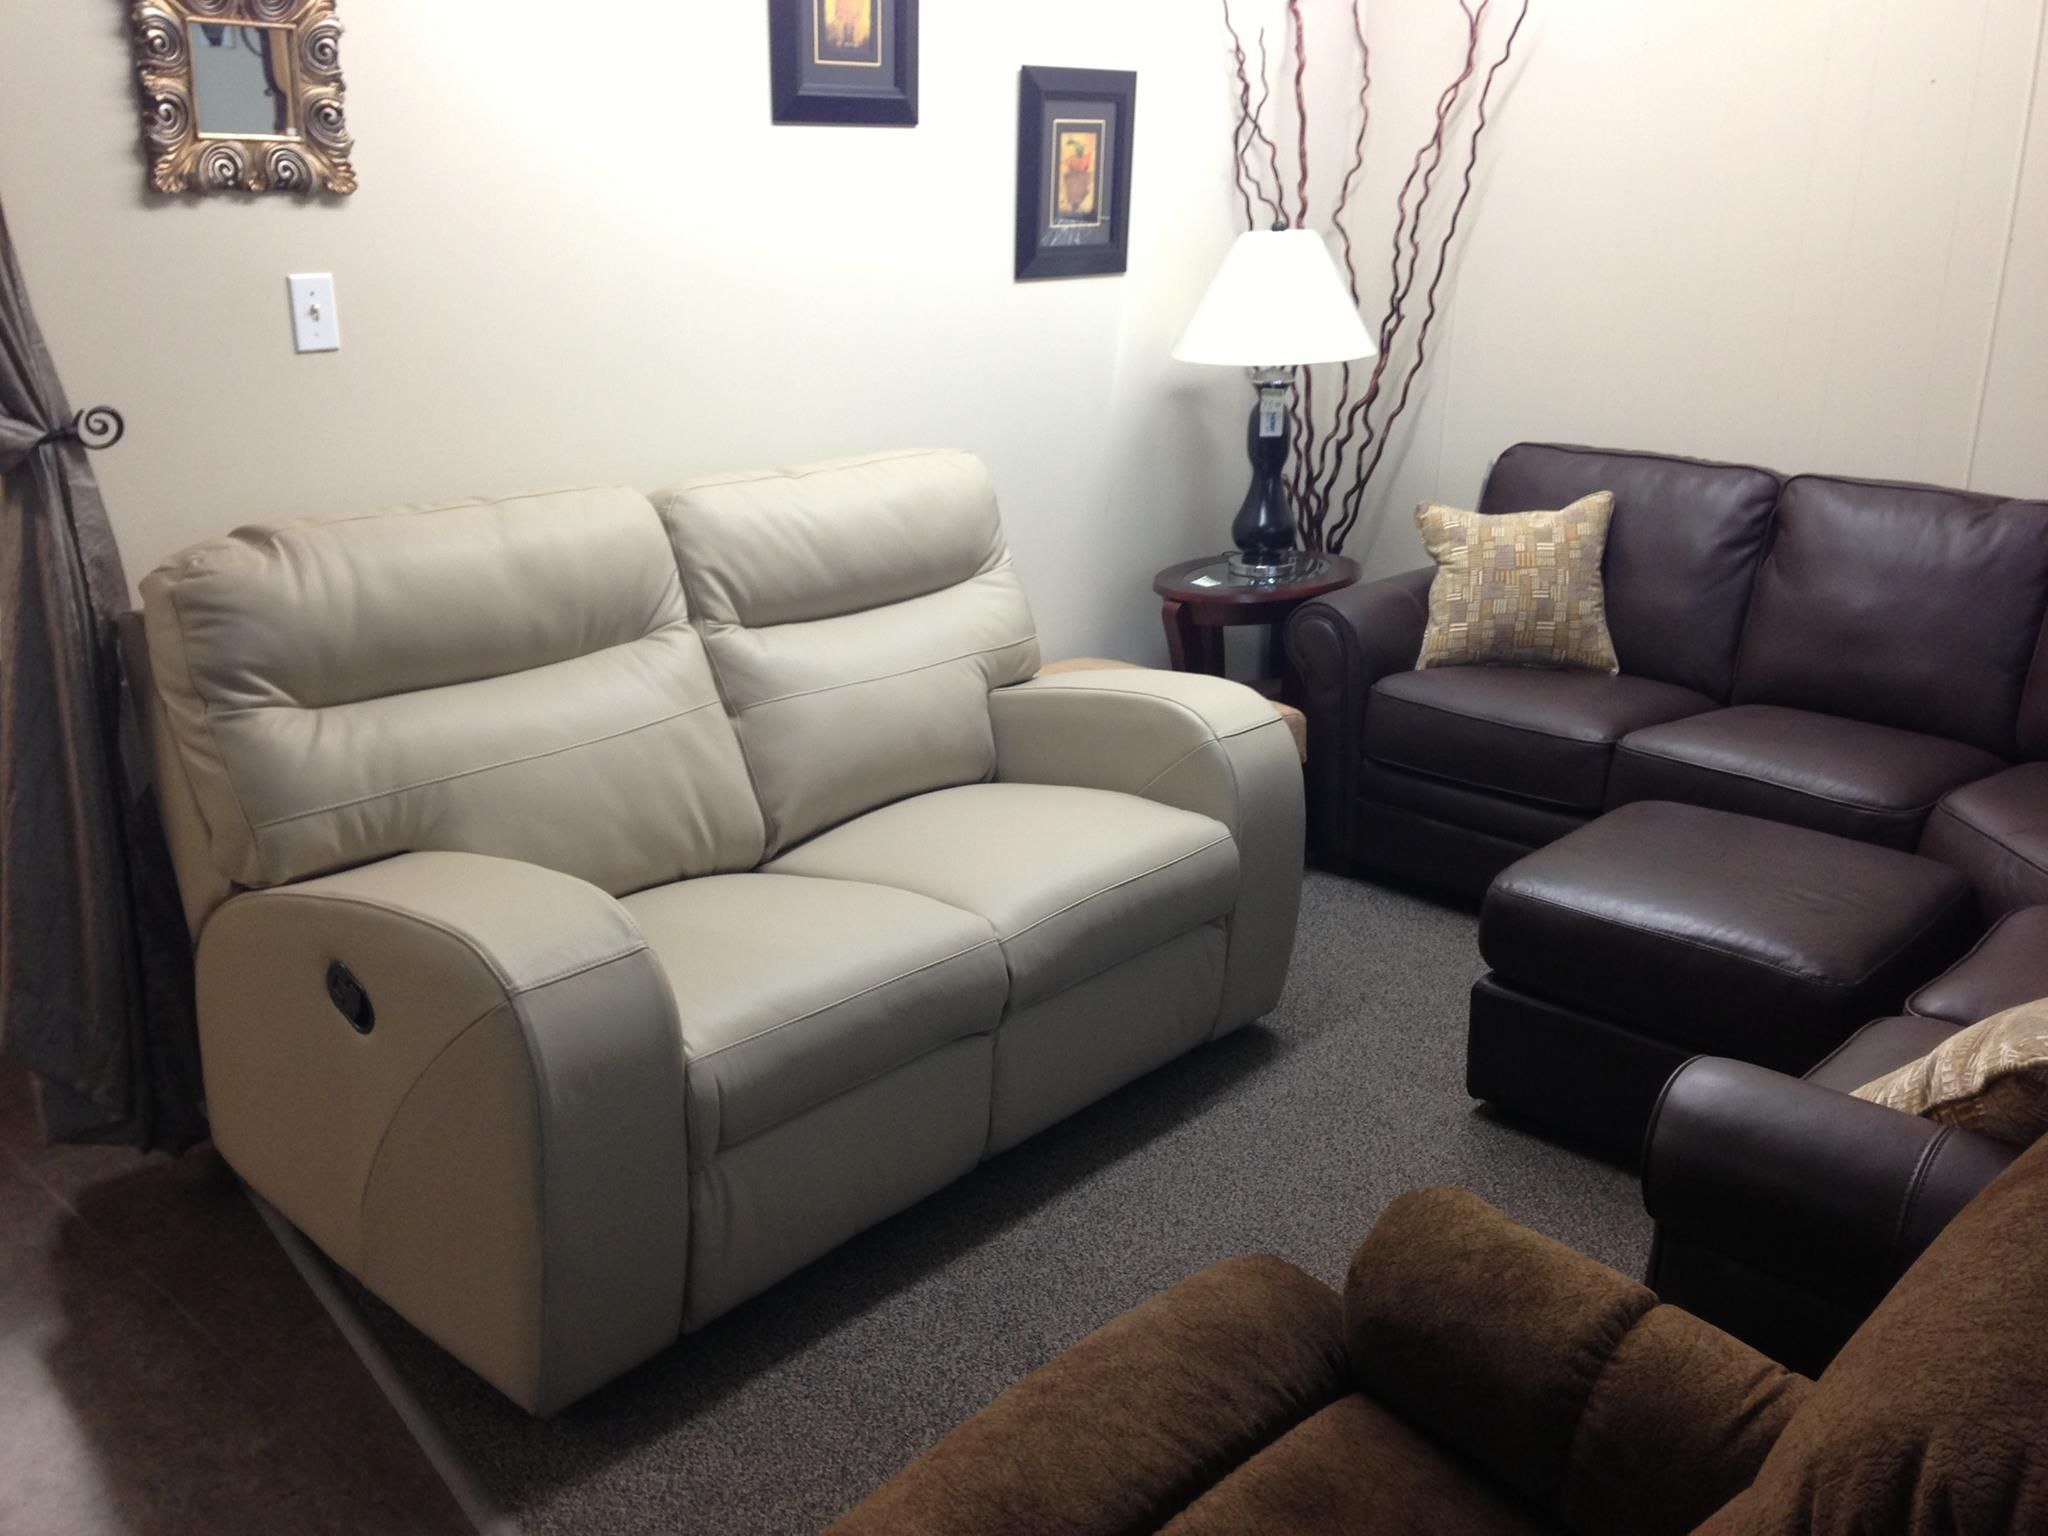 Glenlawn reclining loveseat with butter soft Venice leather